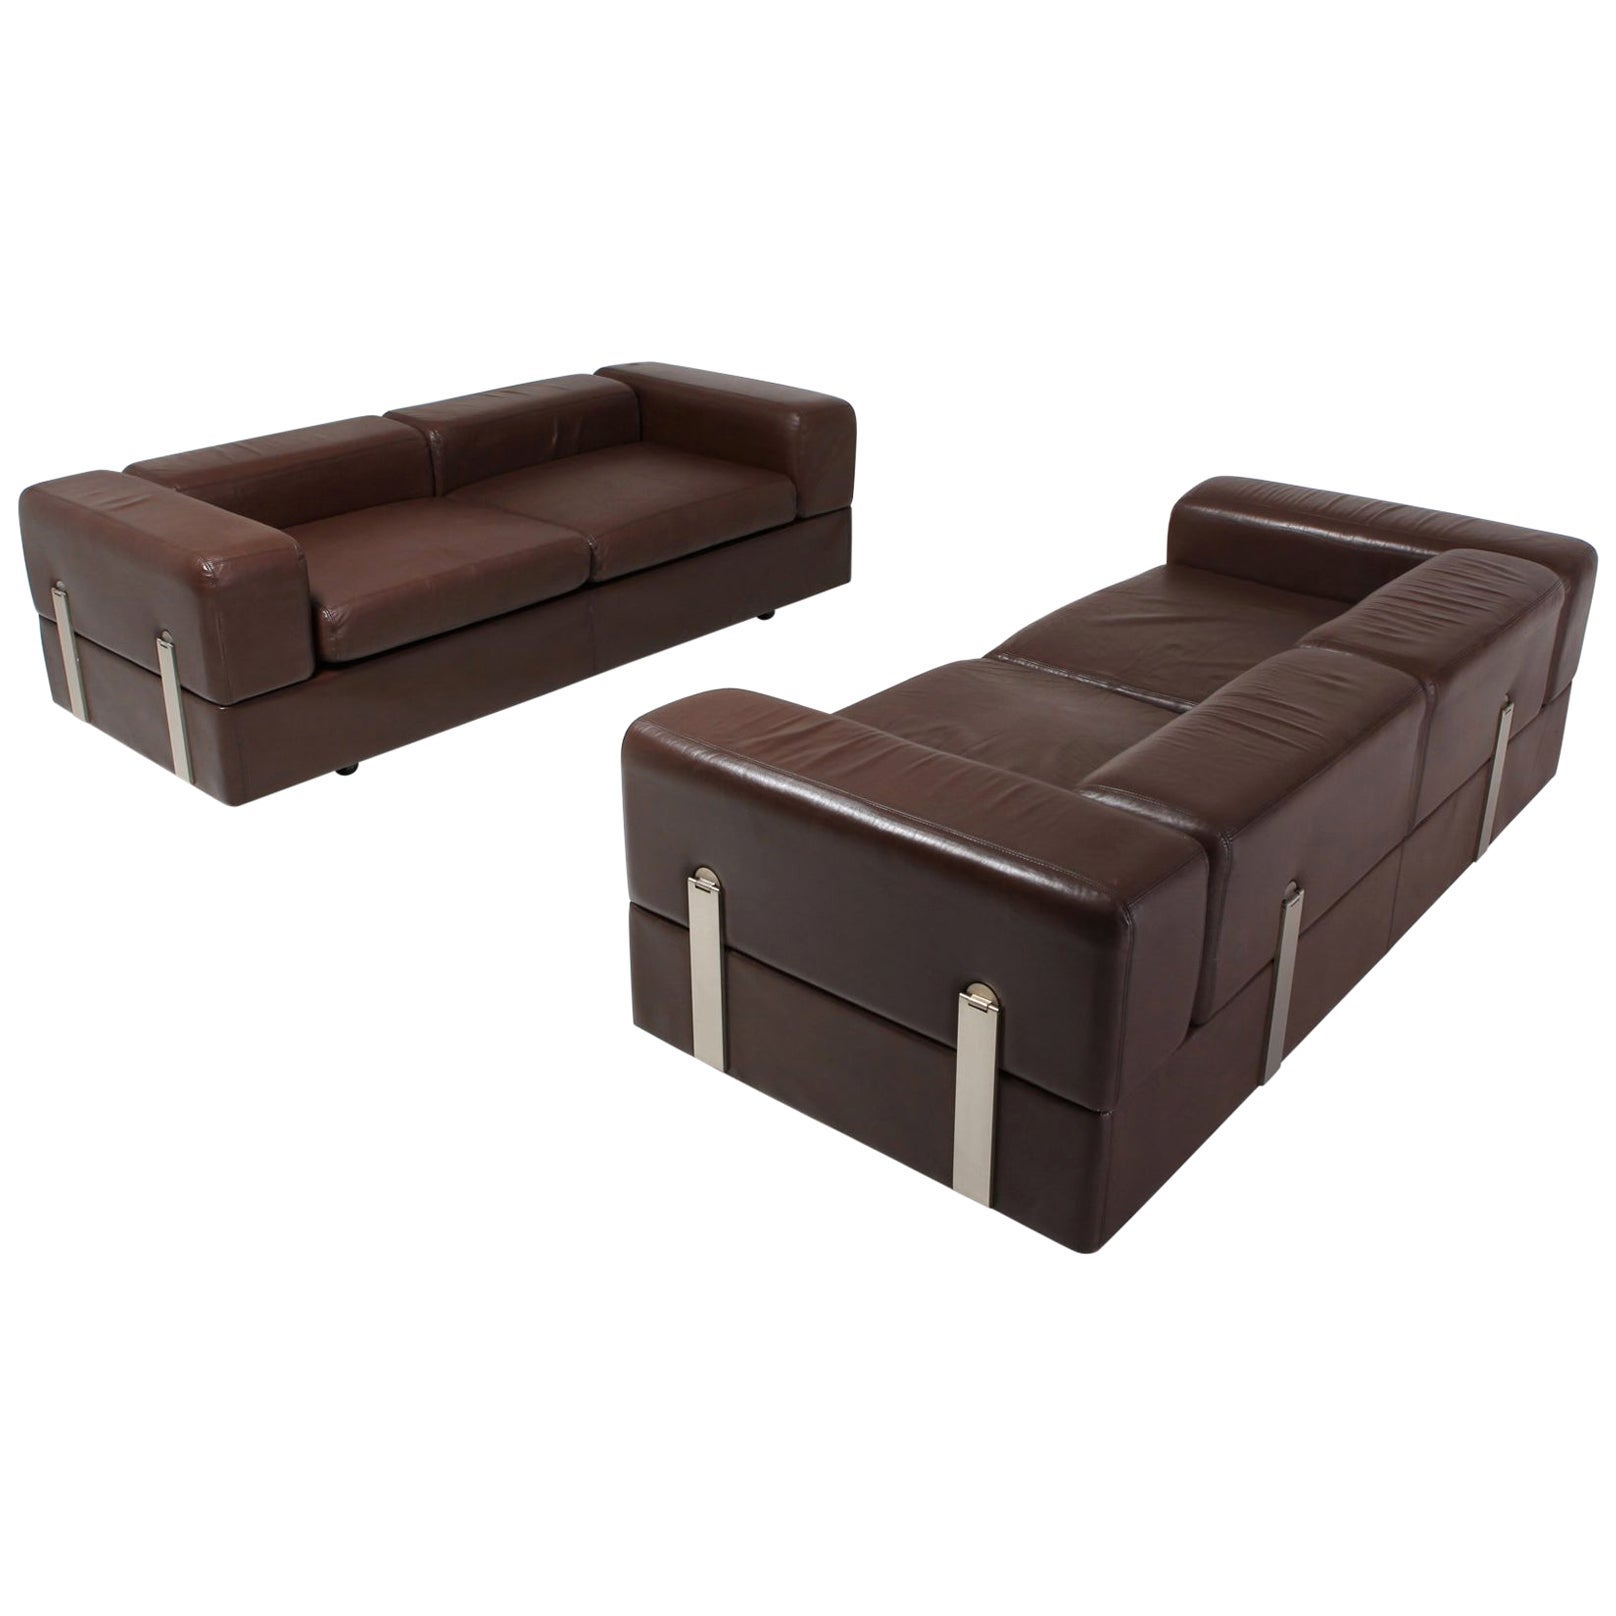 Daybed Sofa 711 by Tito Agnoli for Cinova in Brown Leather